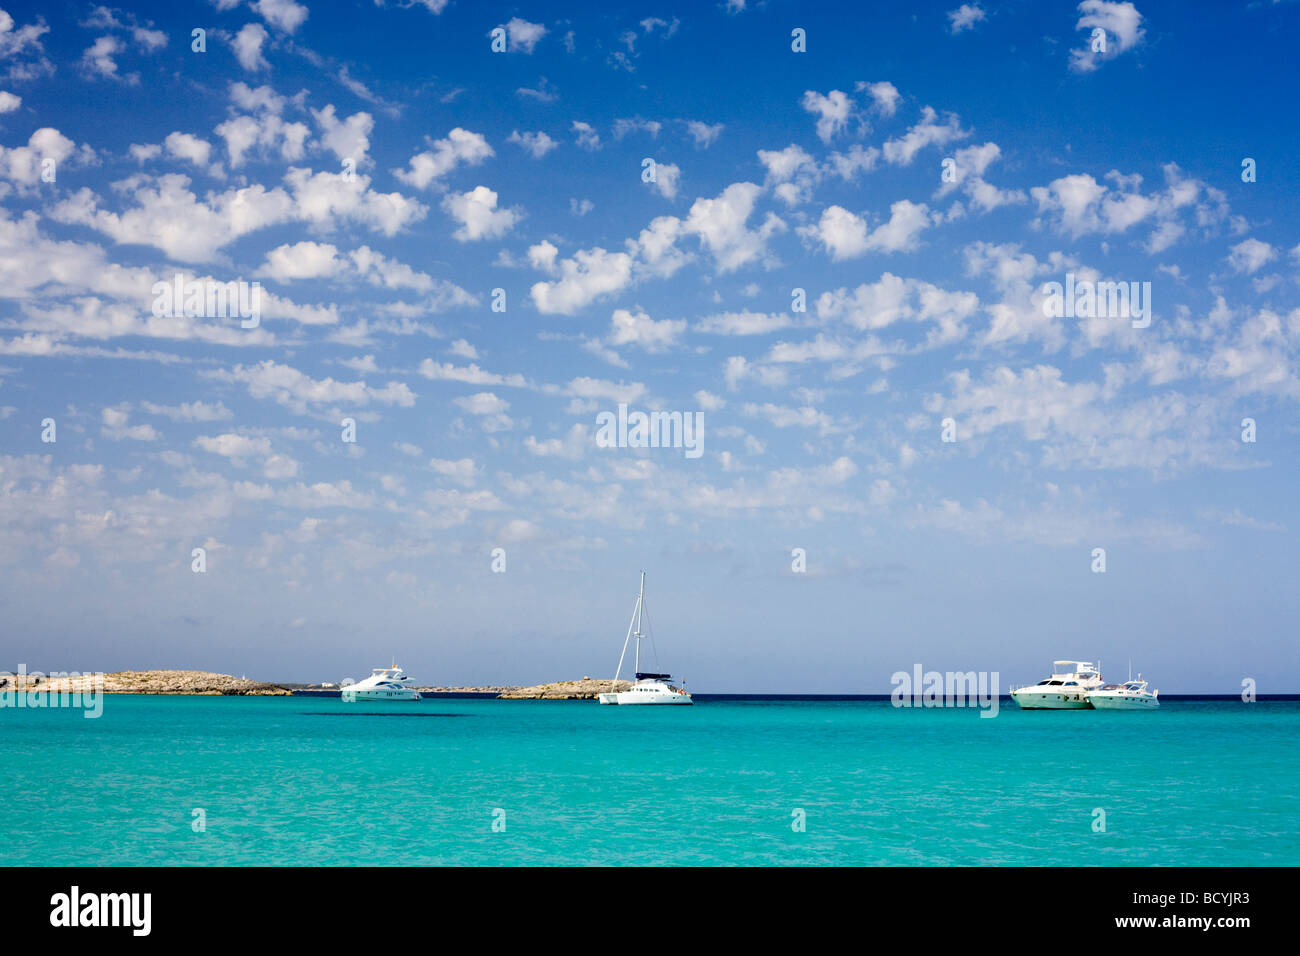 Yachts at Illetes - Stock Image